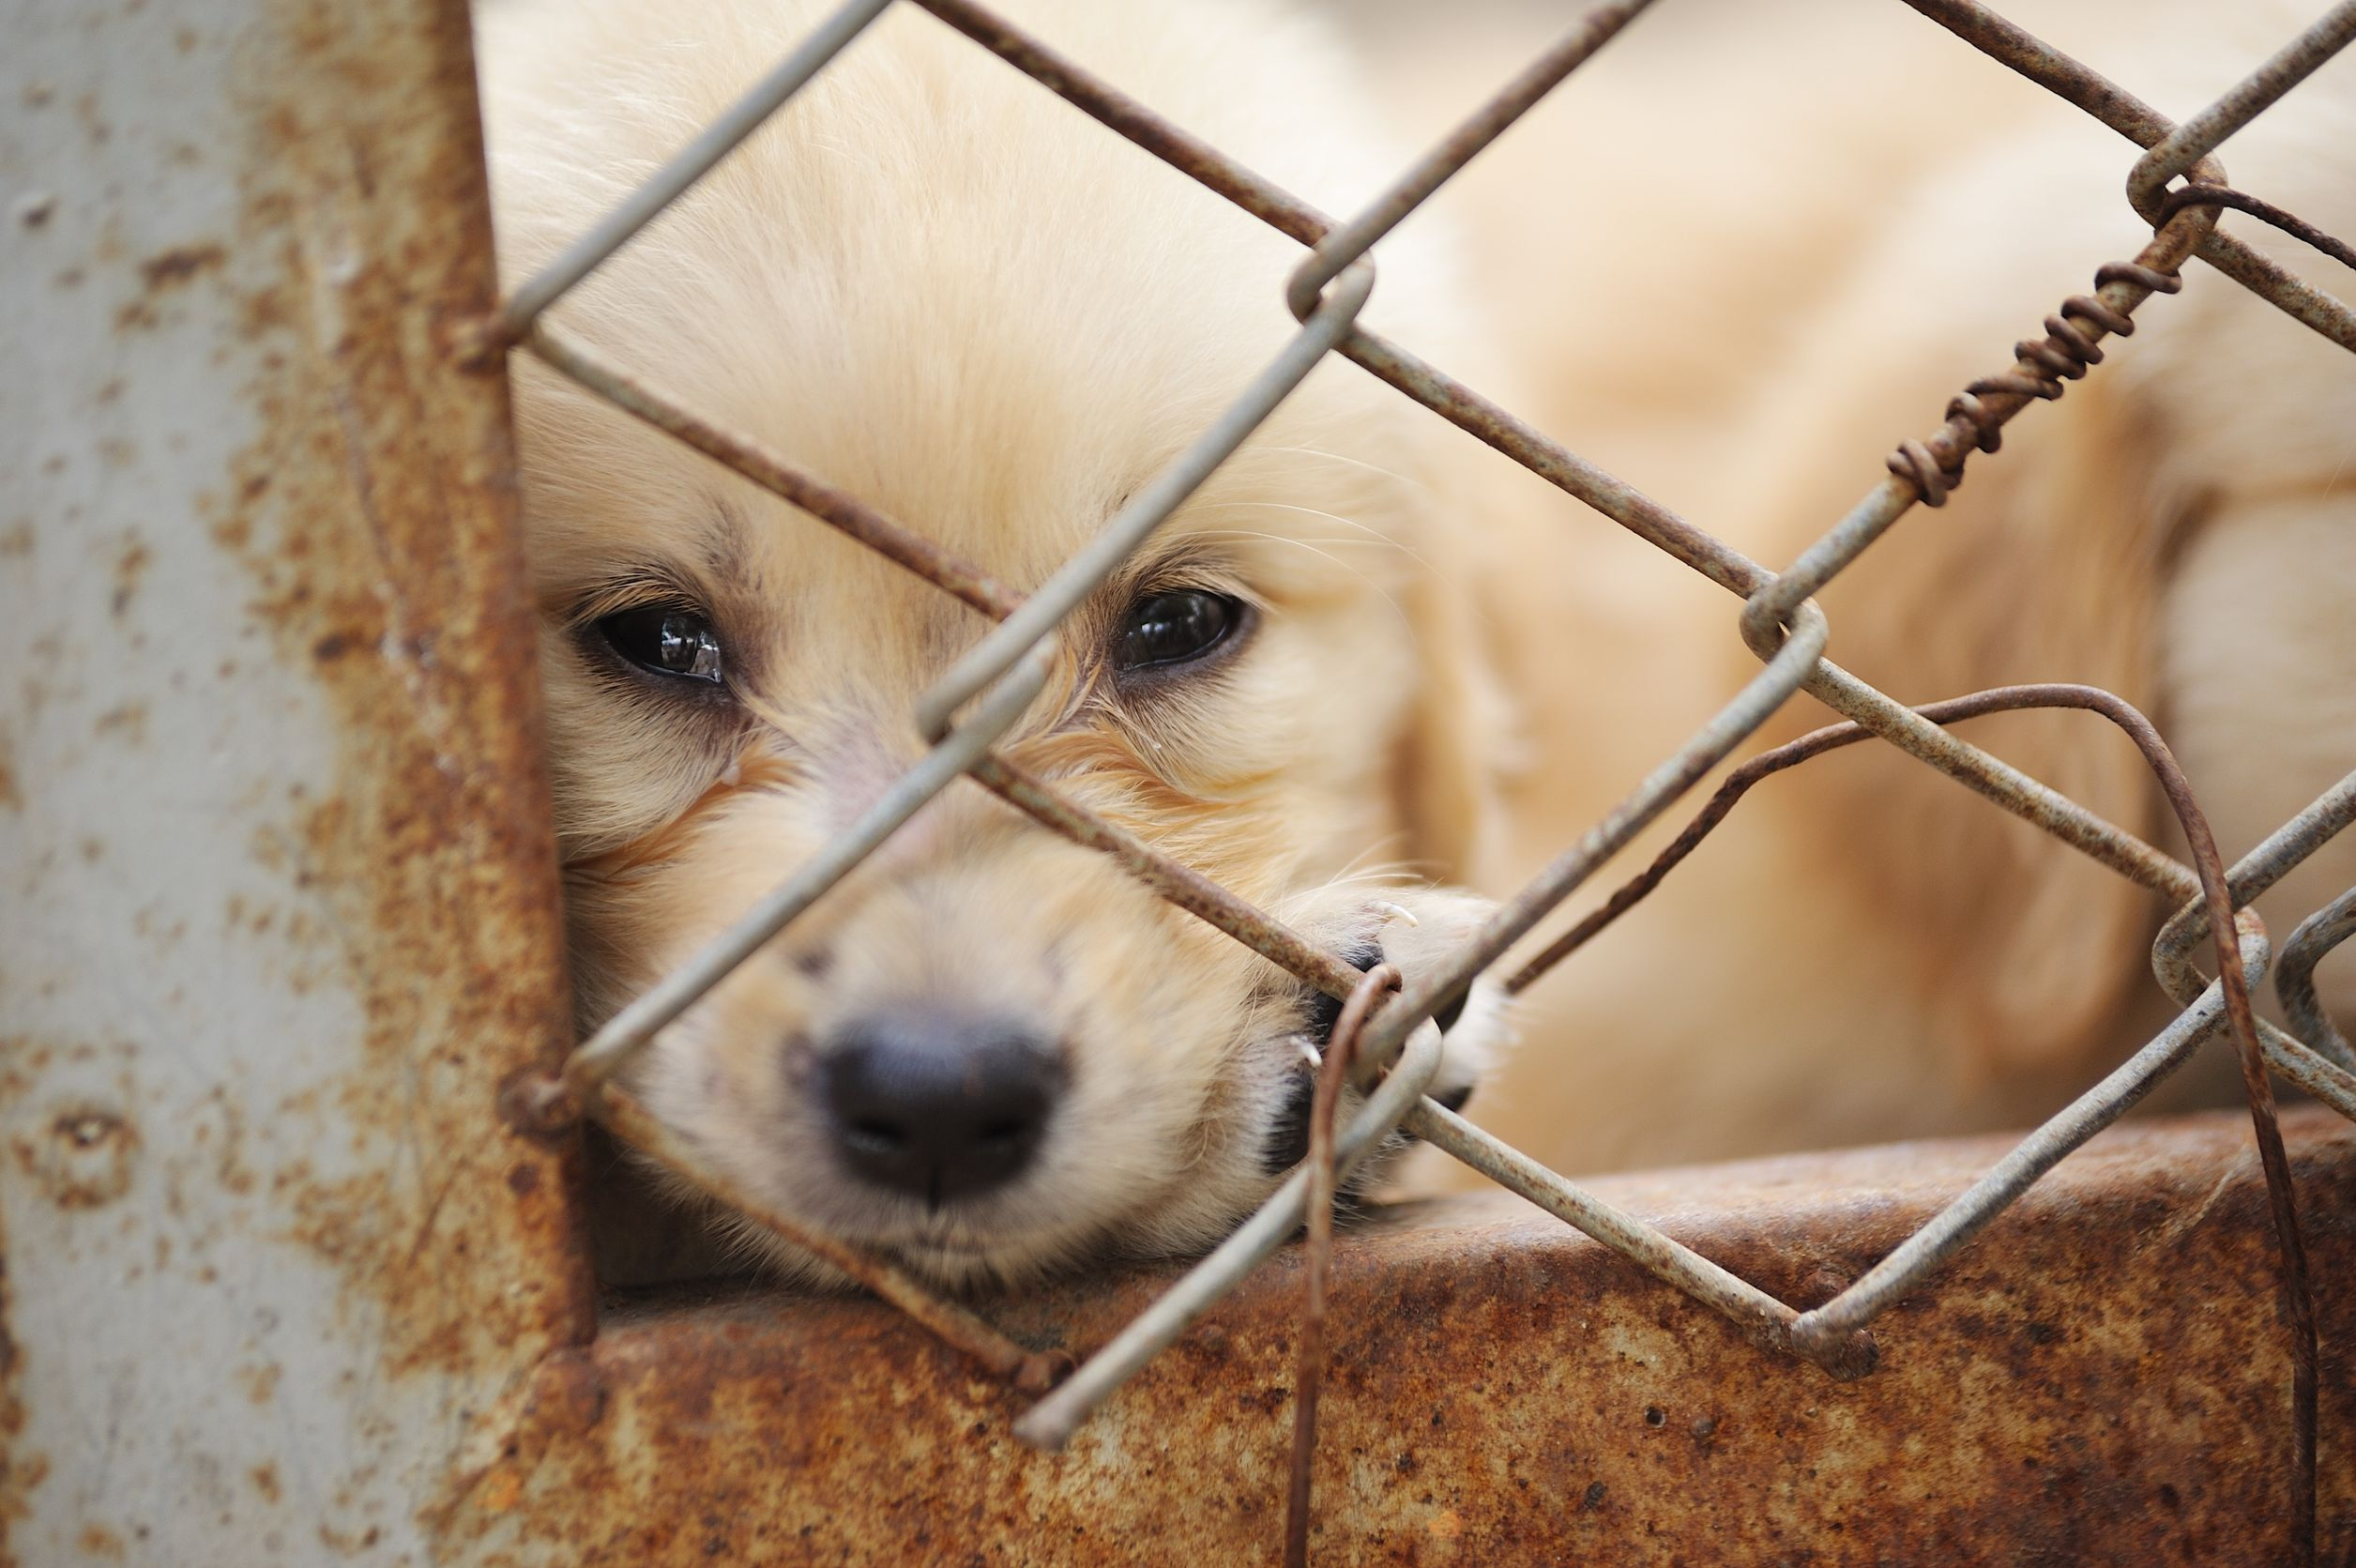 animal rights group invokes the constitution for legal definition of